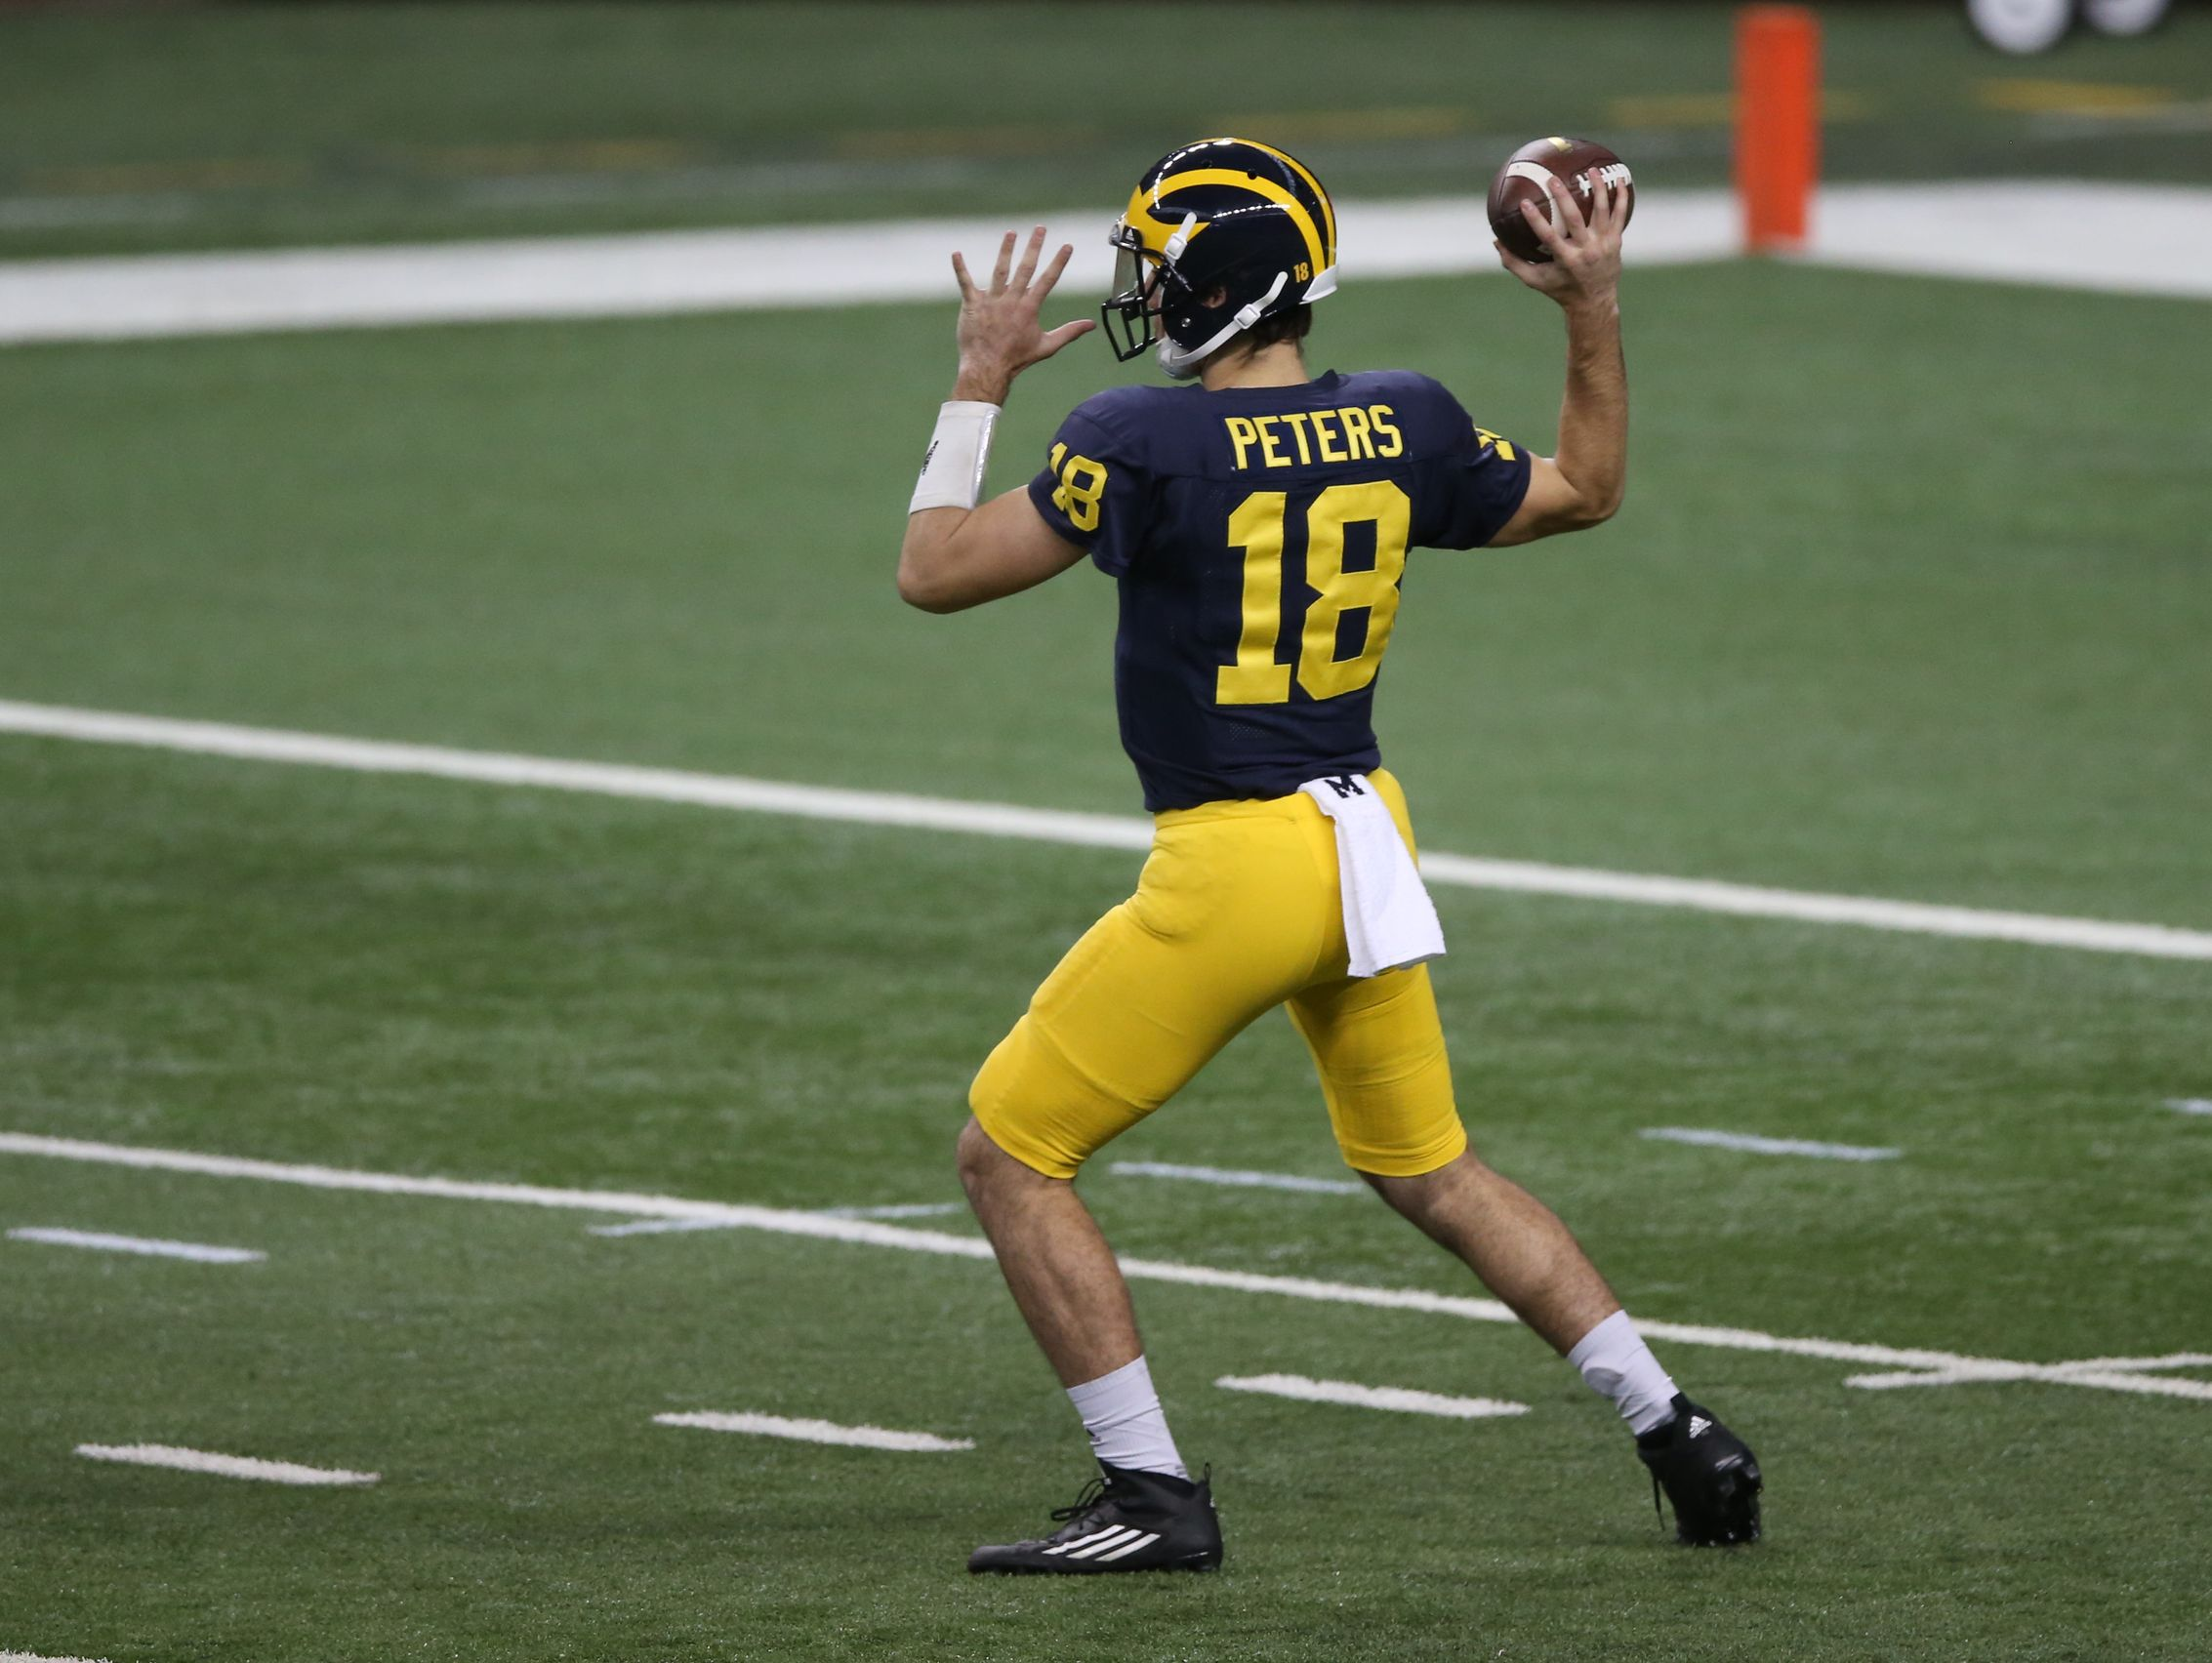 U-M freshman Brandon Peters throws passes during a practice held at Ford Field in Detroit on March 26, 2016.